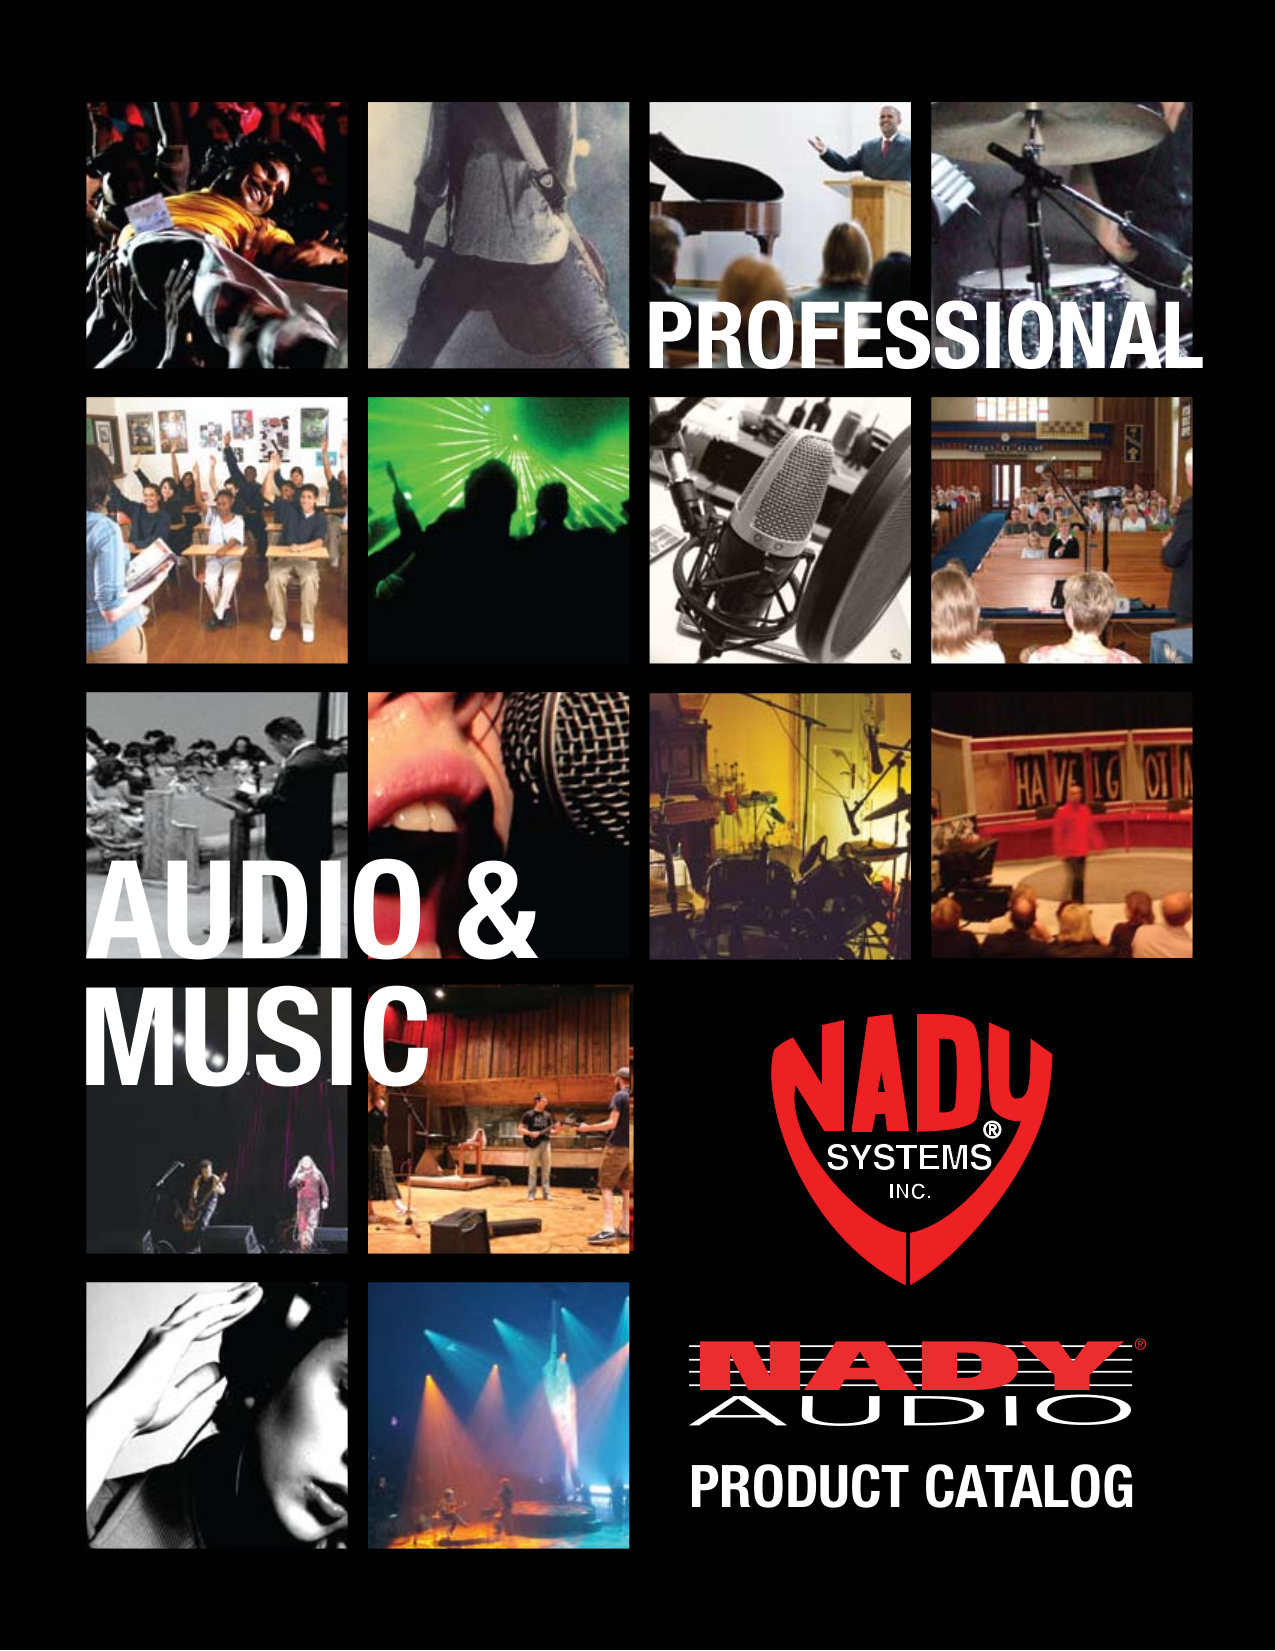 pdf for Nady Amp XA-2100 manual